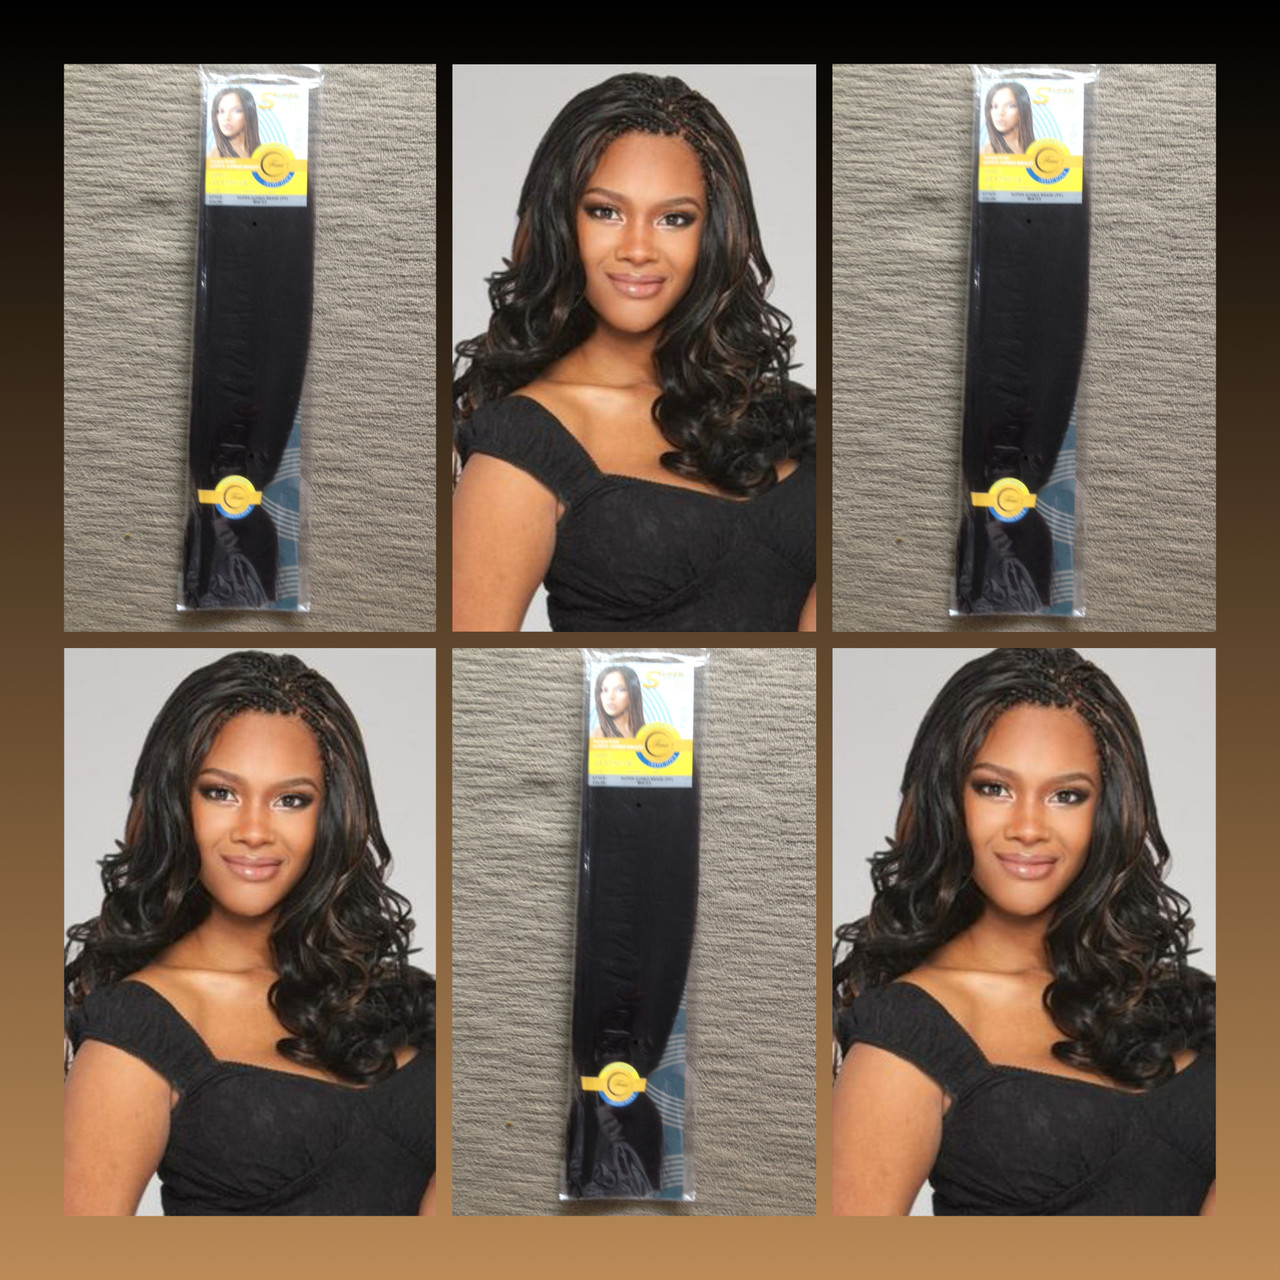 Femi Synthetic Super Jumbo Braid Hair Extension 433 House Of Braids